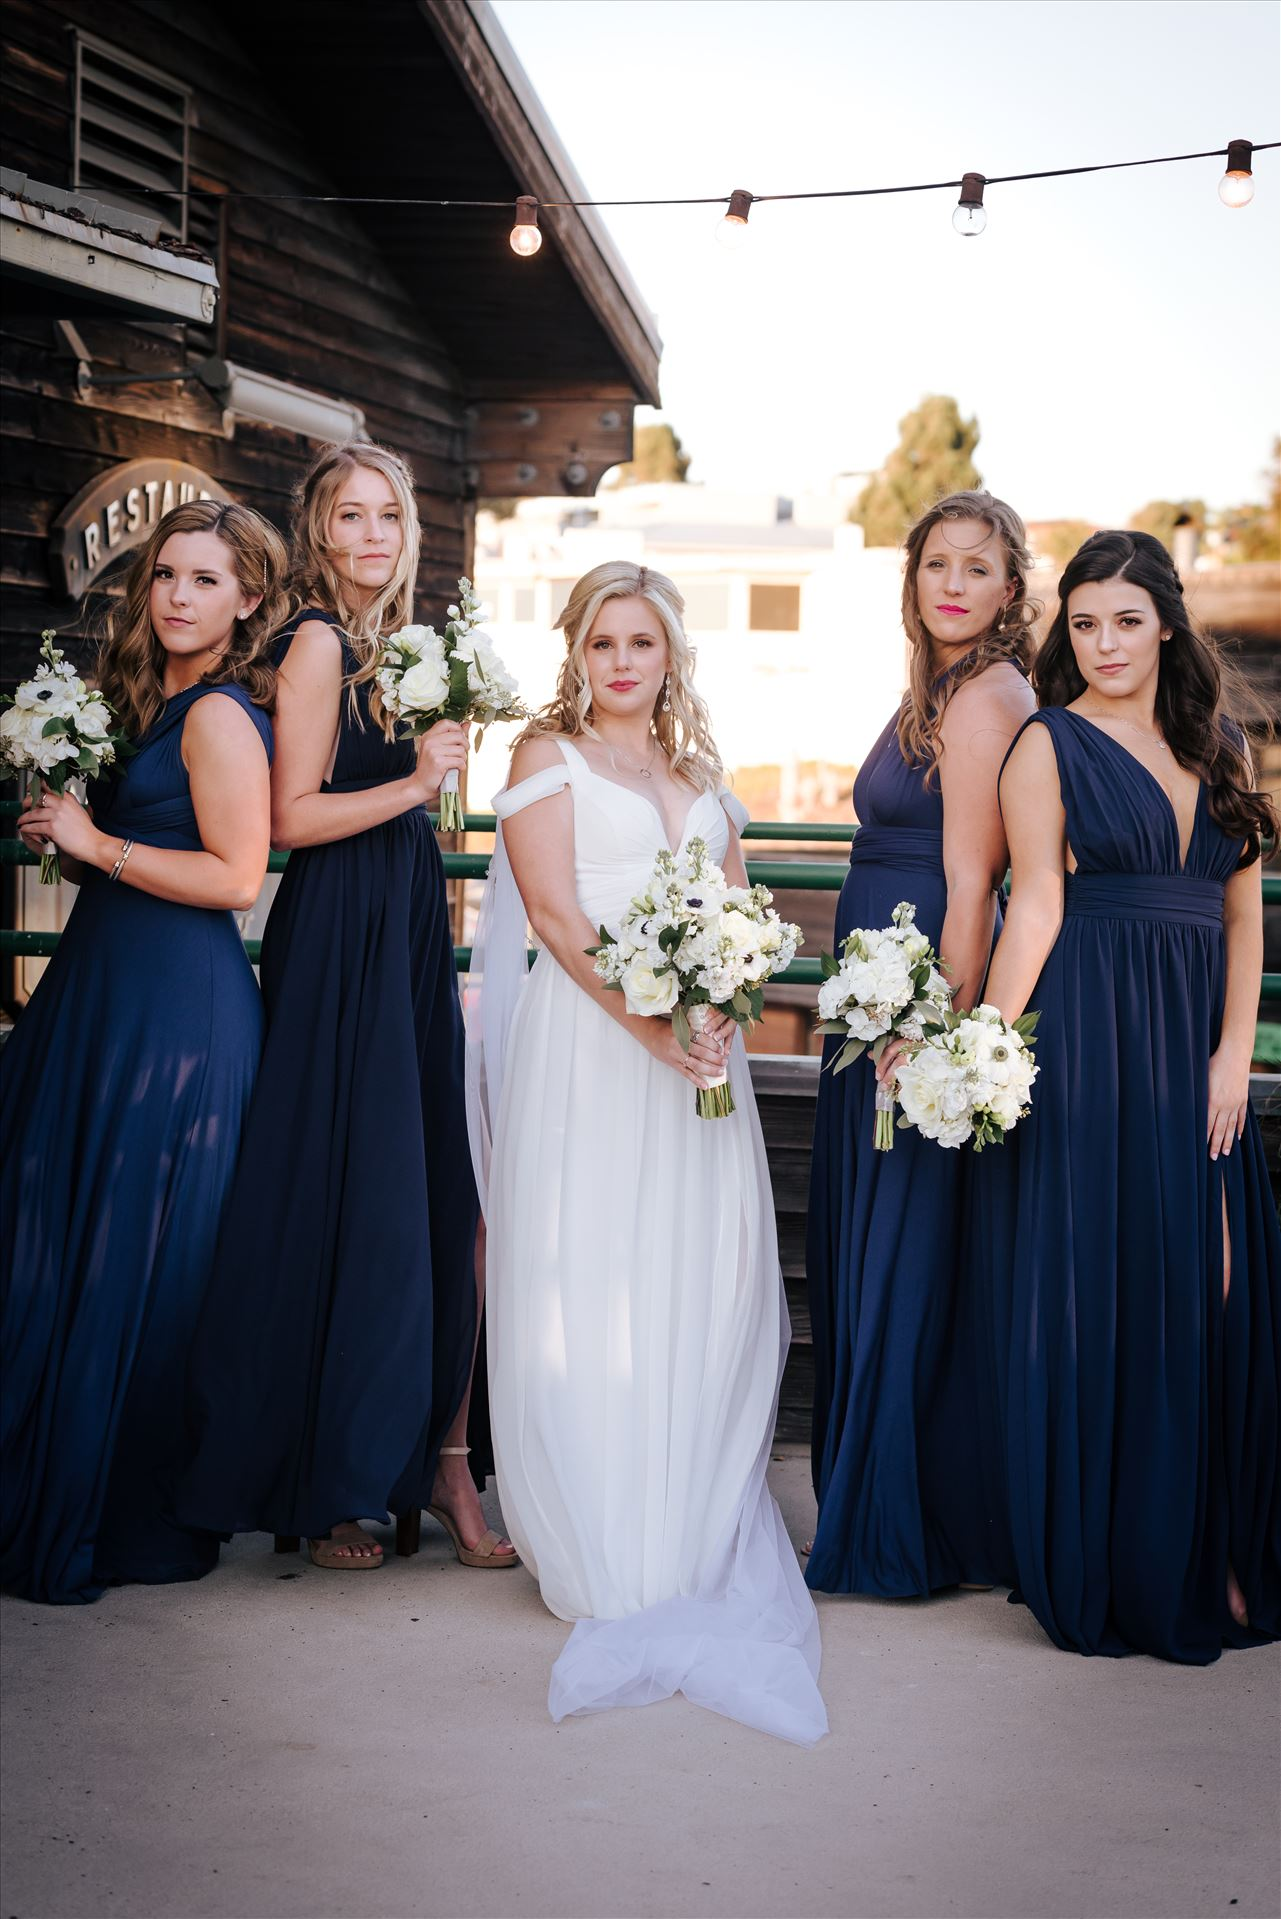 FW-8206.JPG Sarah Williams of Mirror's Edge Photography, a San Luis Obispo Wedding and Engagement Photographer, captures Ryan and Joanna's wedding at the iconic Windows on the Water Restaurant in Morro Bay, California.  Bride and Bridesmaids outside of Windows. by Sarah Williams